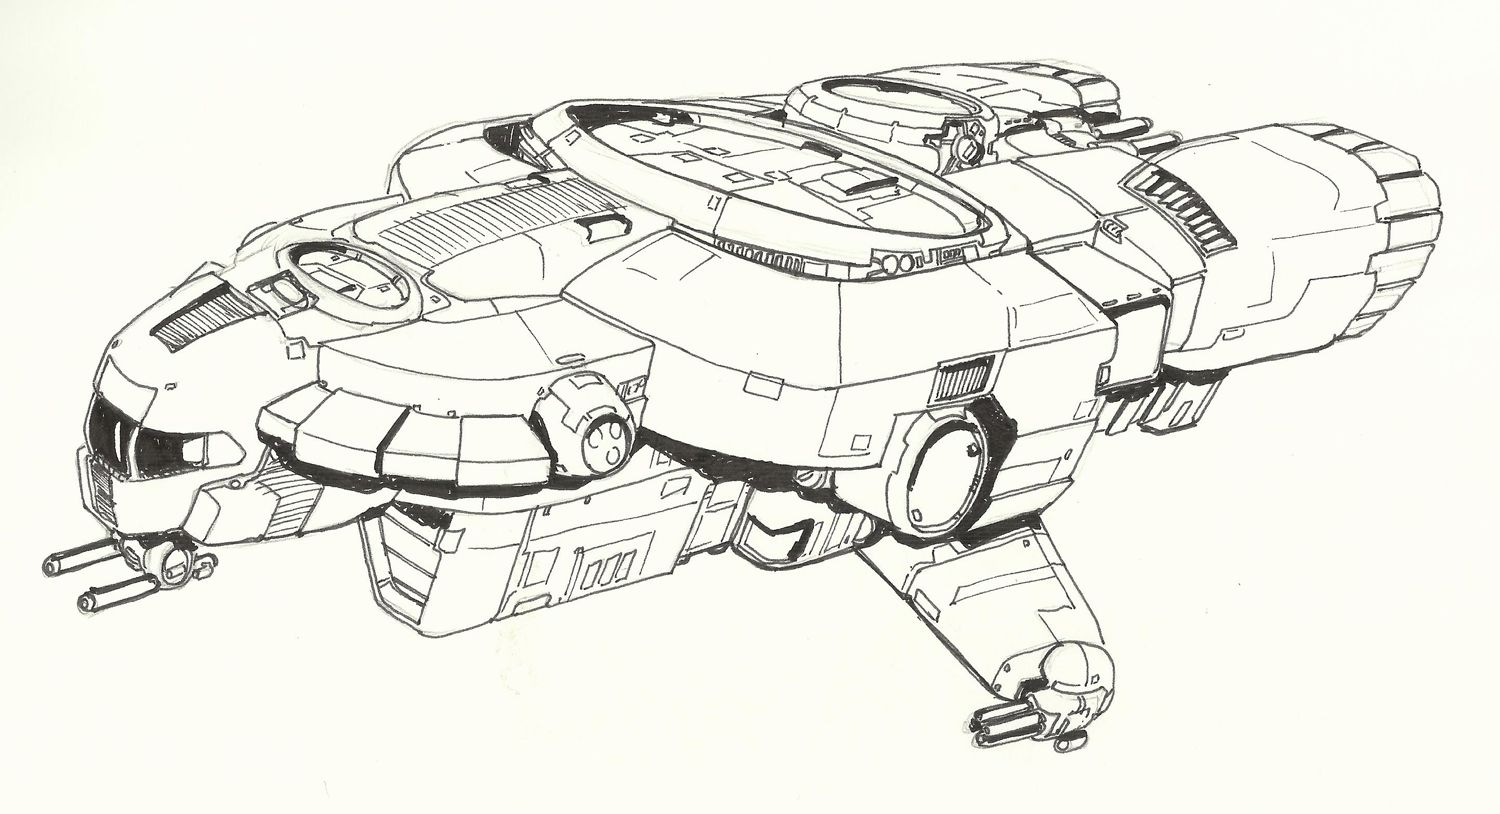 Yz Armed Freighter Wip By Handofmanos